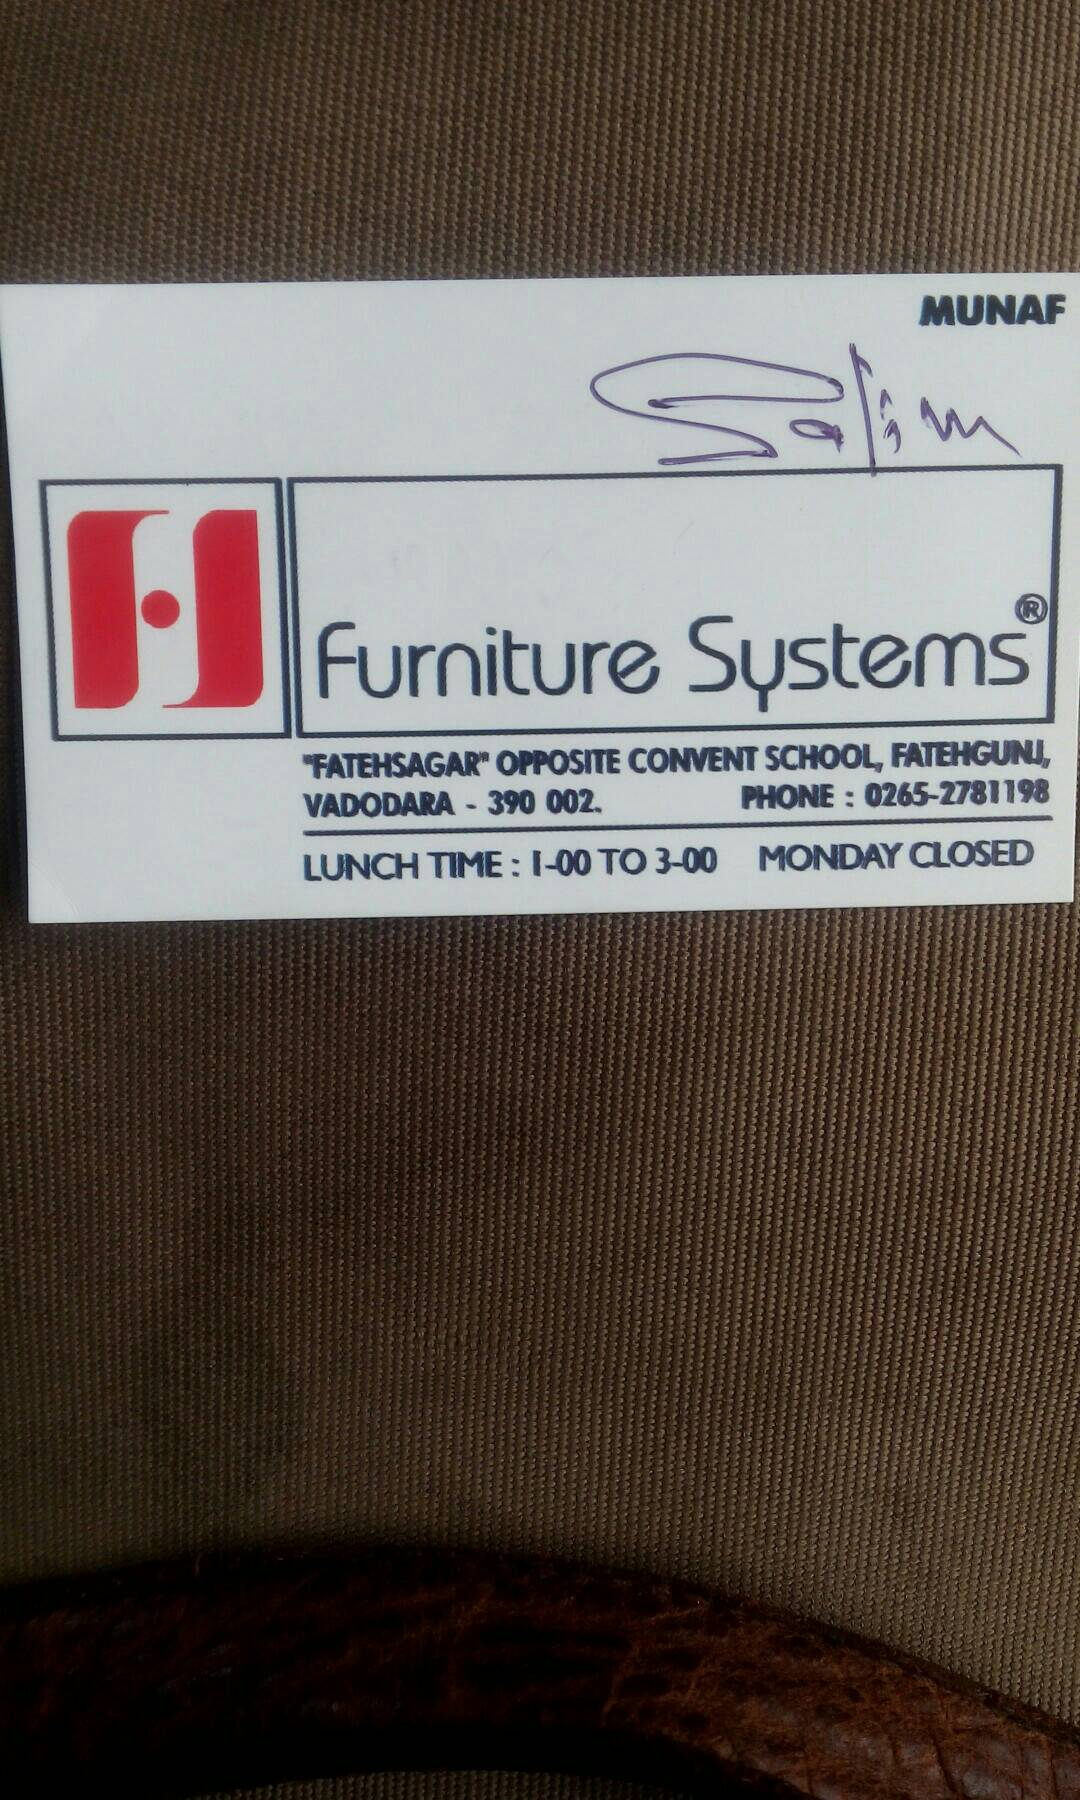 Furniture Systems